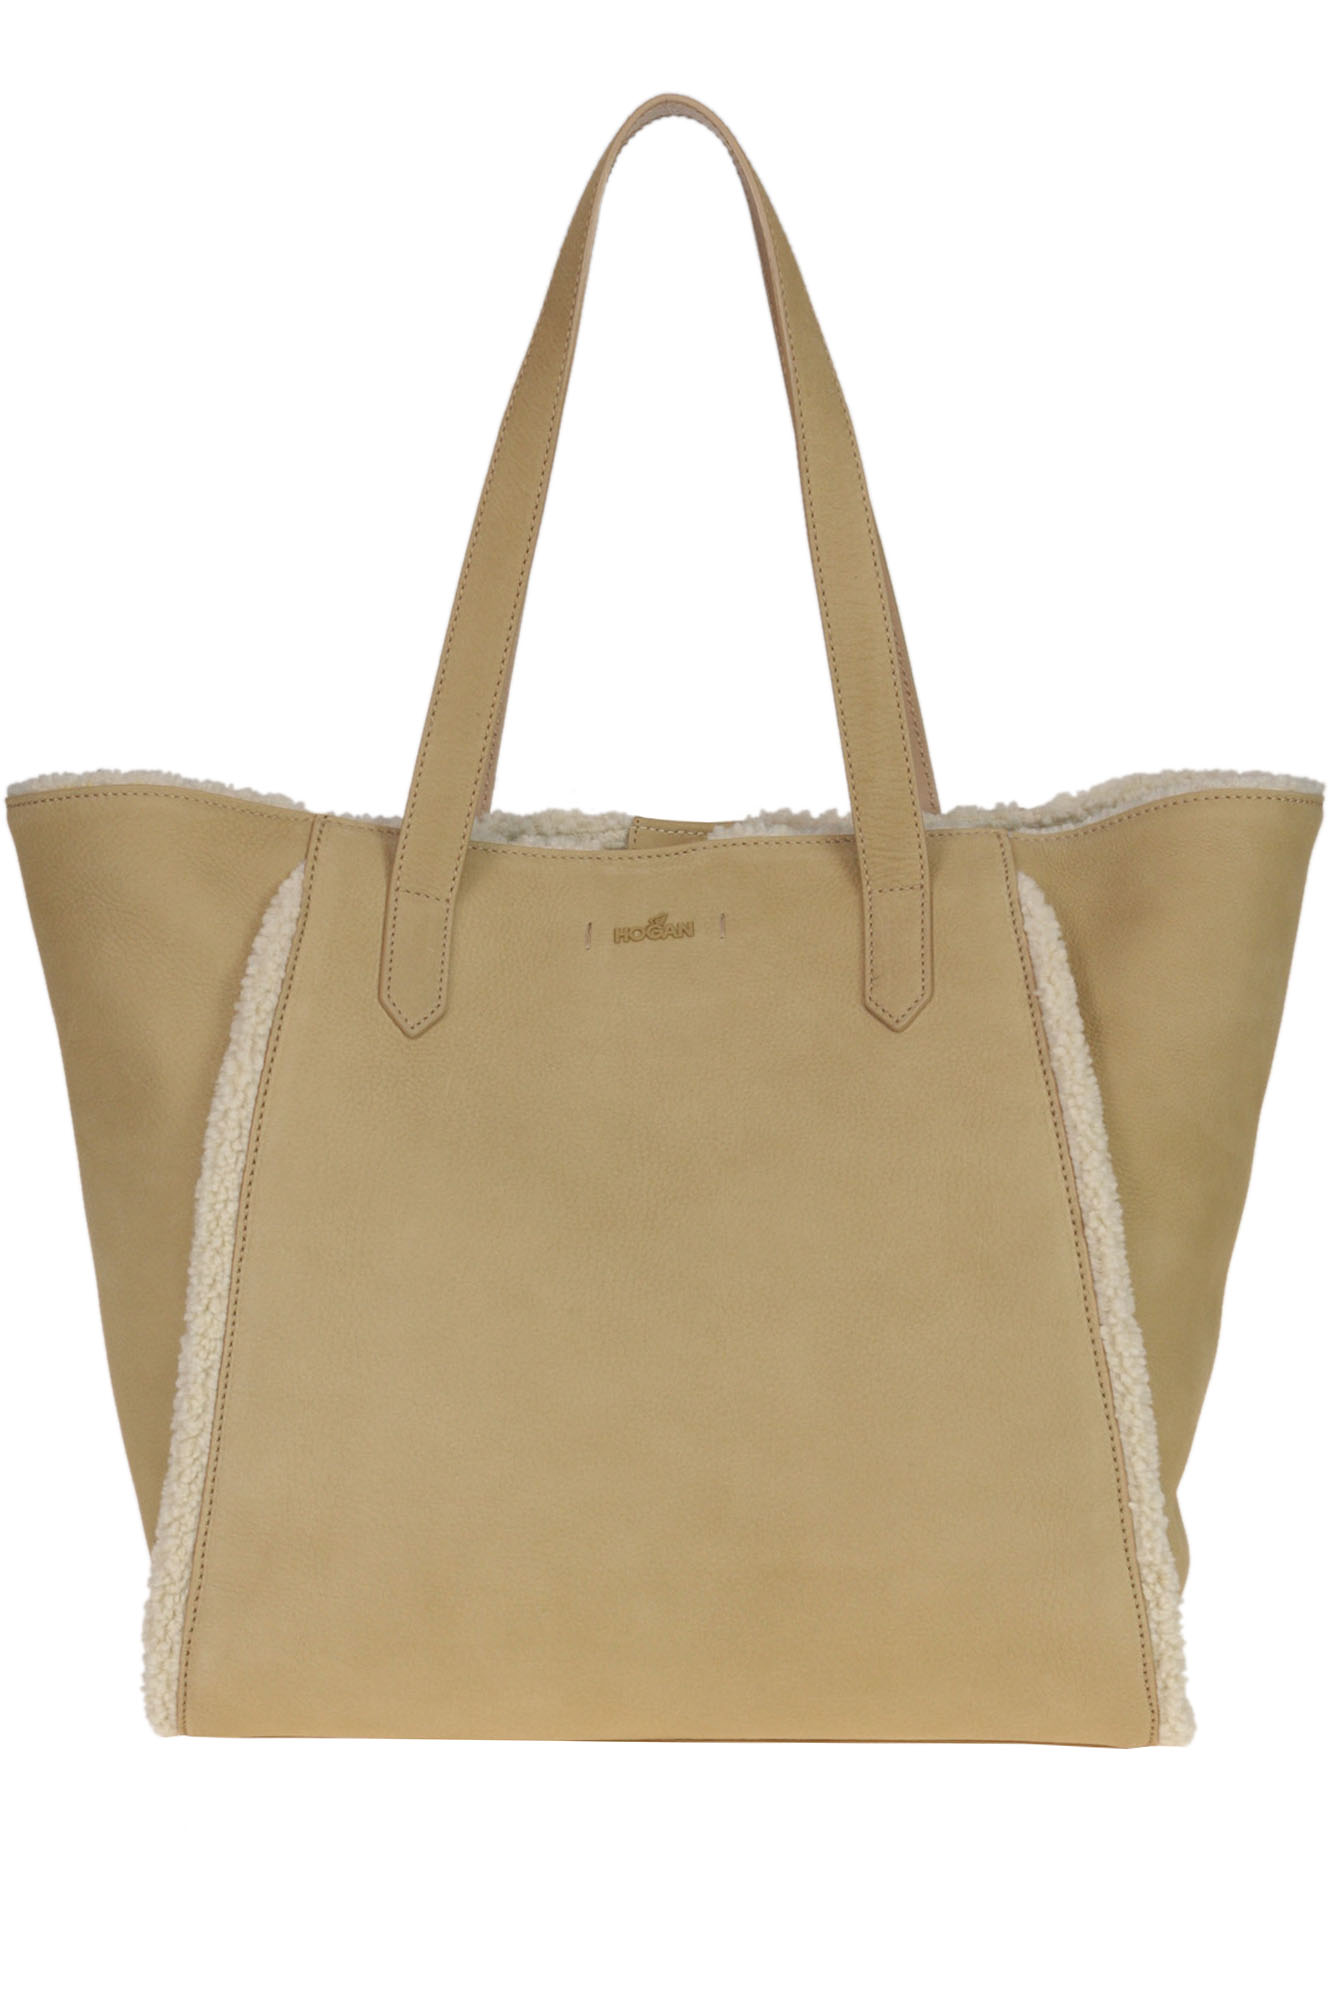 Hogan Iconic Piping Shopping Bag In Beige